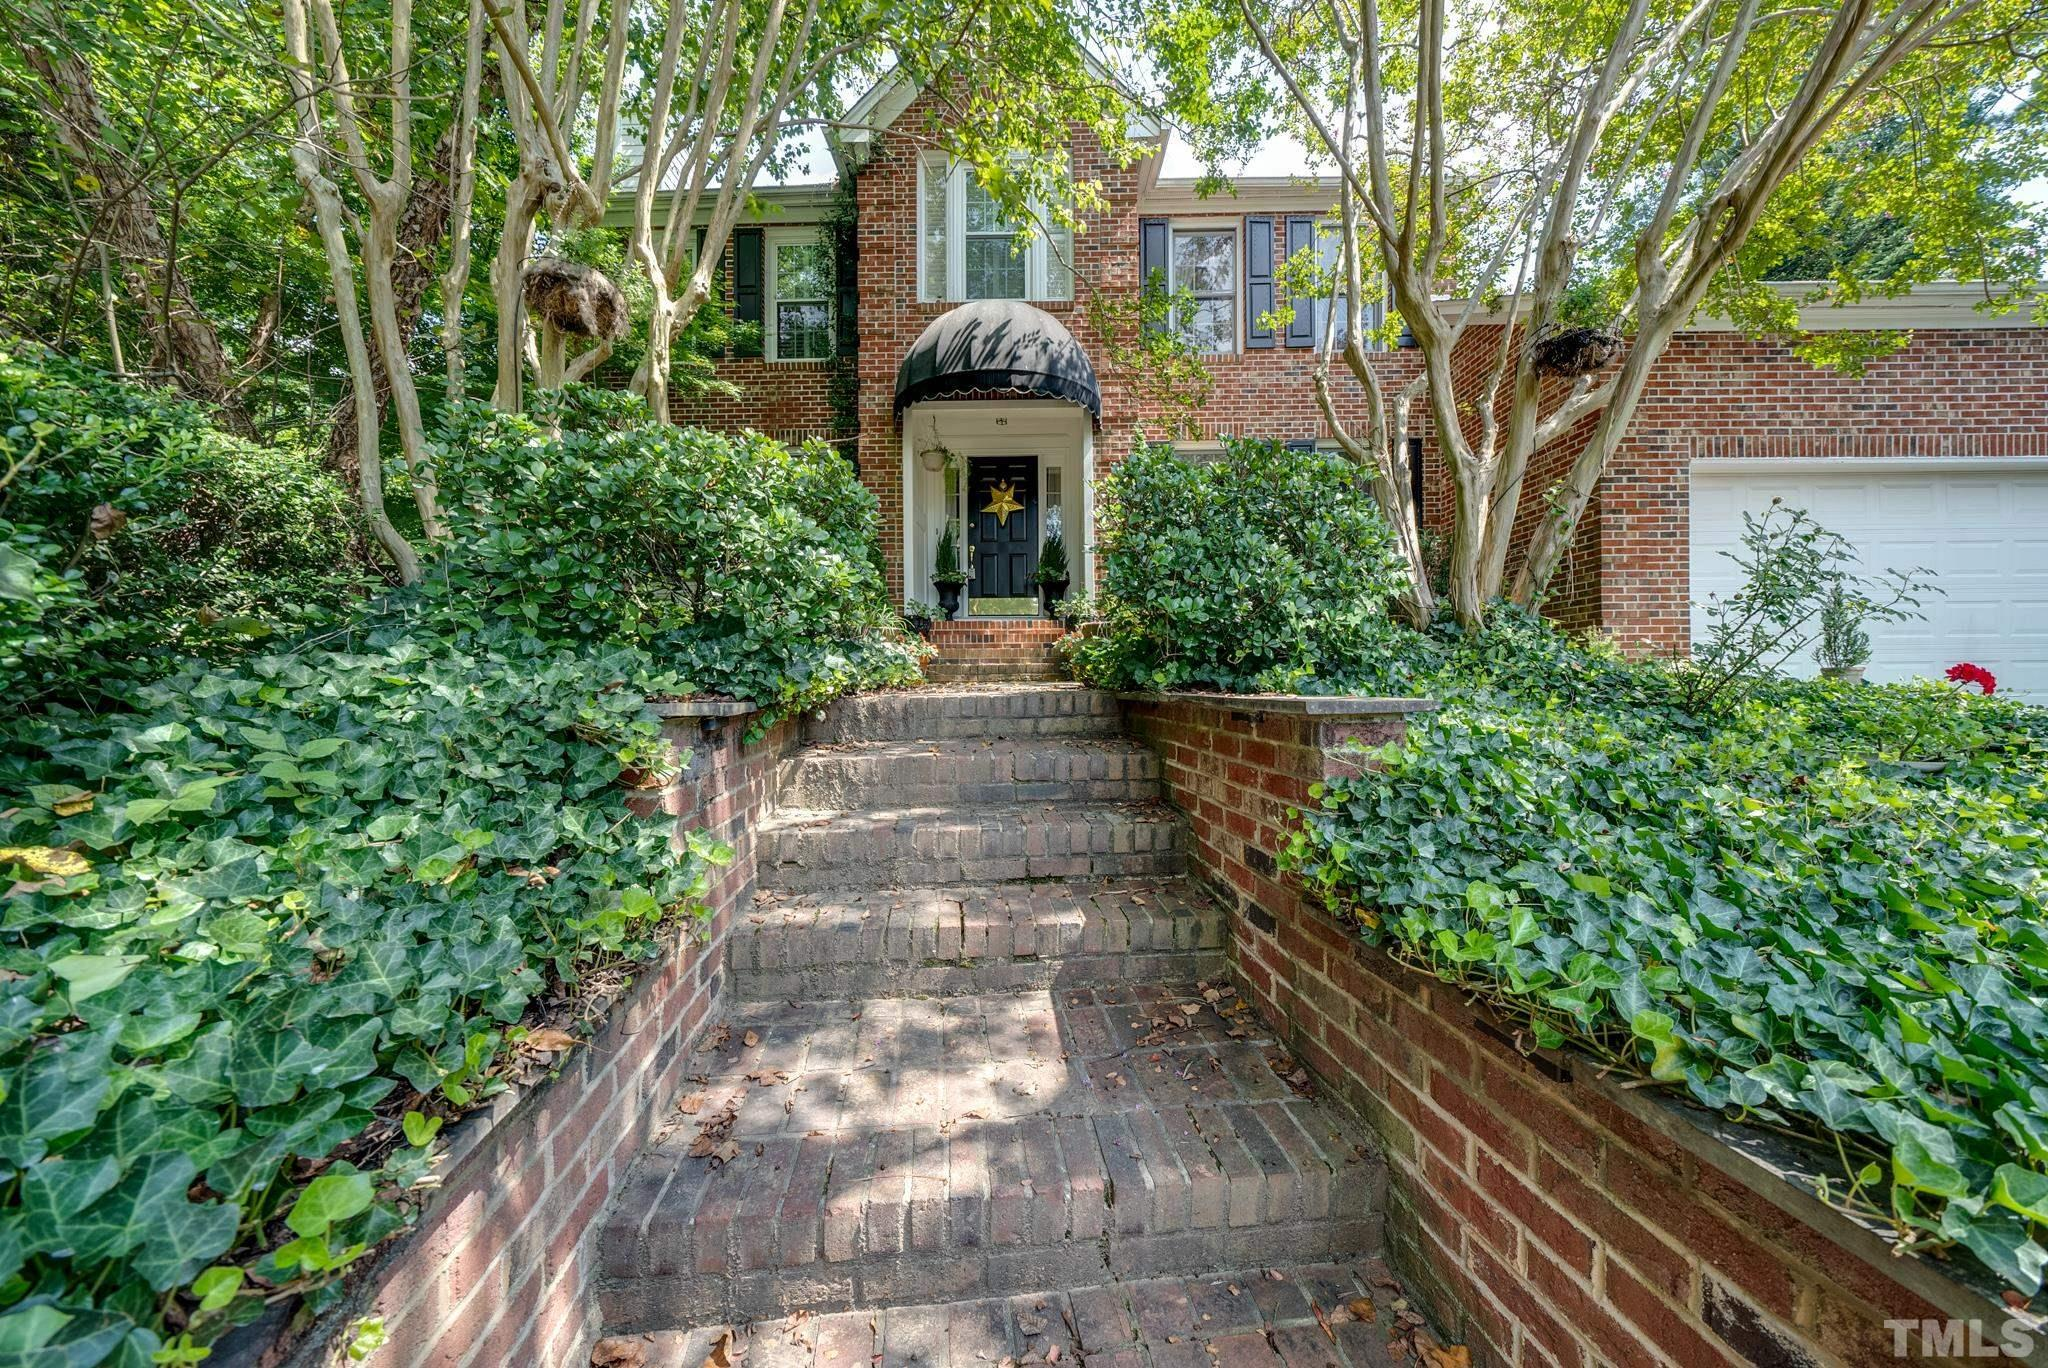 Conveniently located 5 mins from Crabtree Valley Mall & Umstead Park. 10 min to North Hills, 15 mins to Downtown, RDU, or Brier Creek.